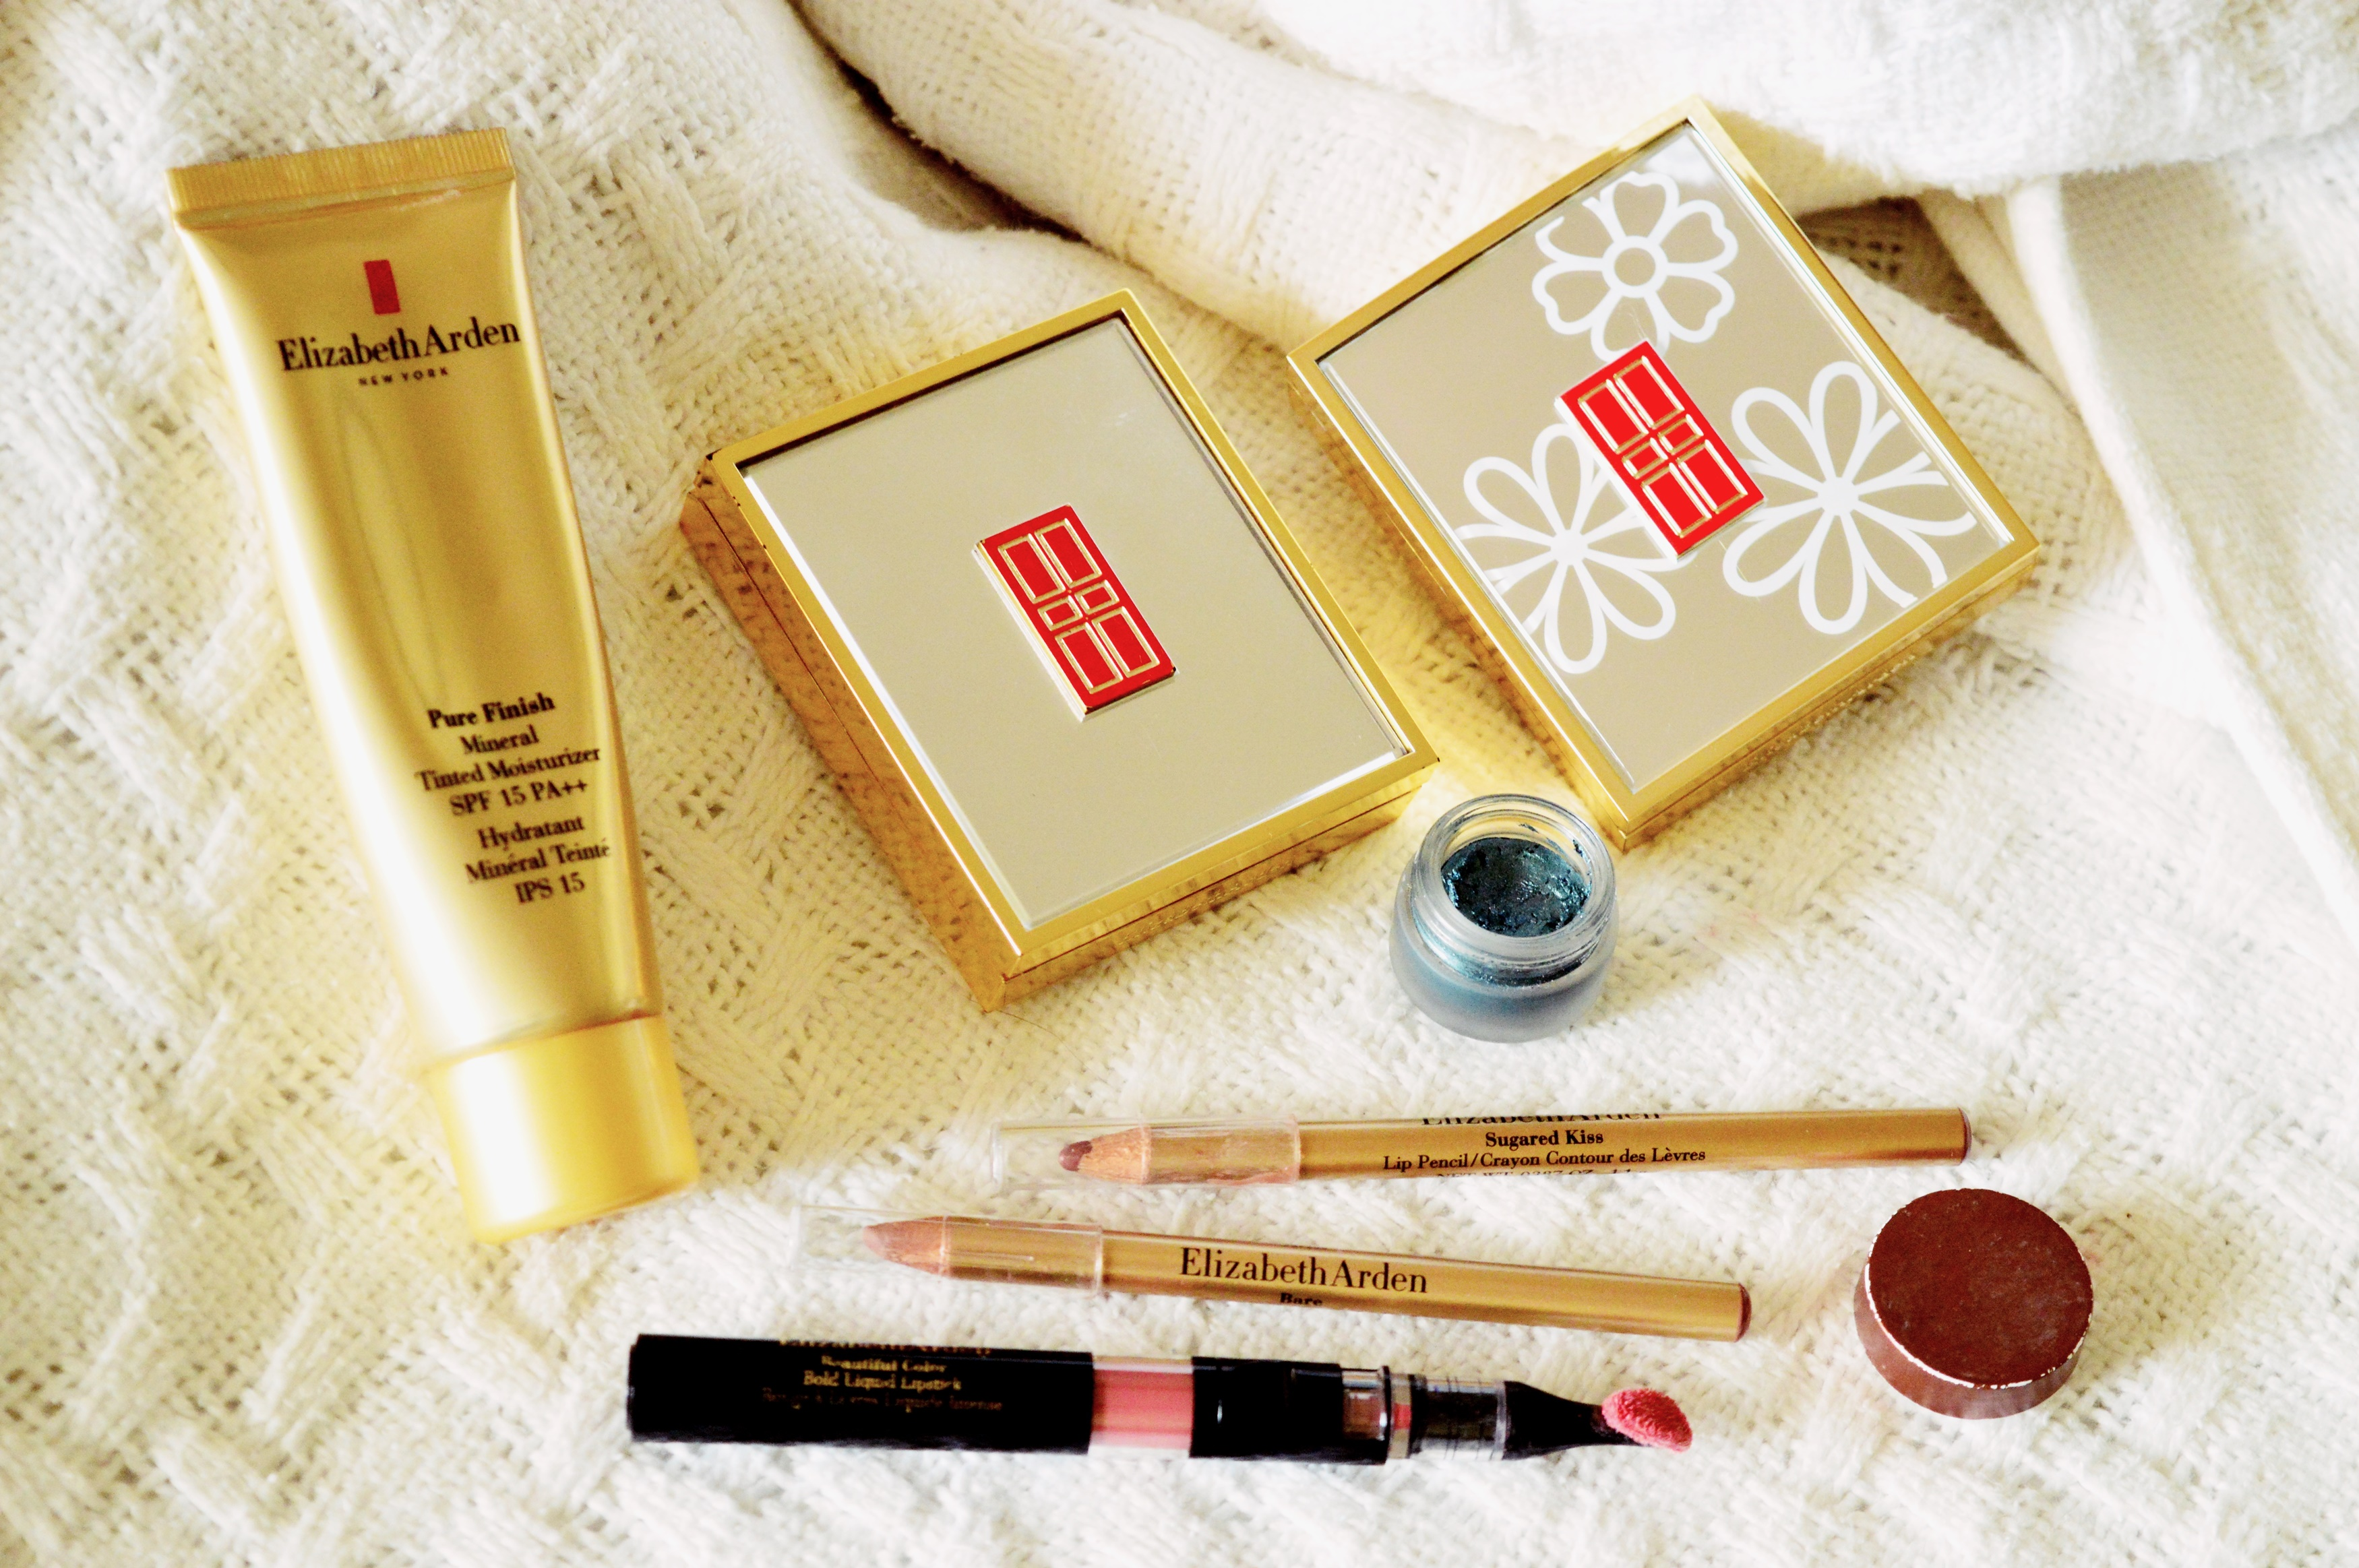 My ultimate make-up picks from Elizabeth Arden {SERIES}